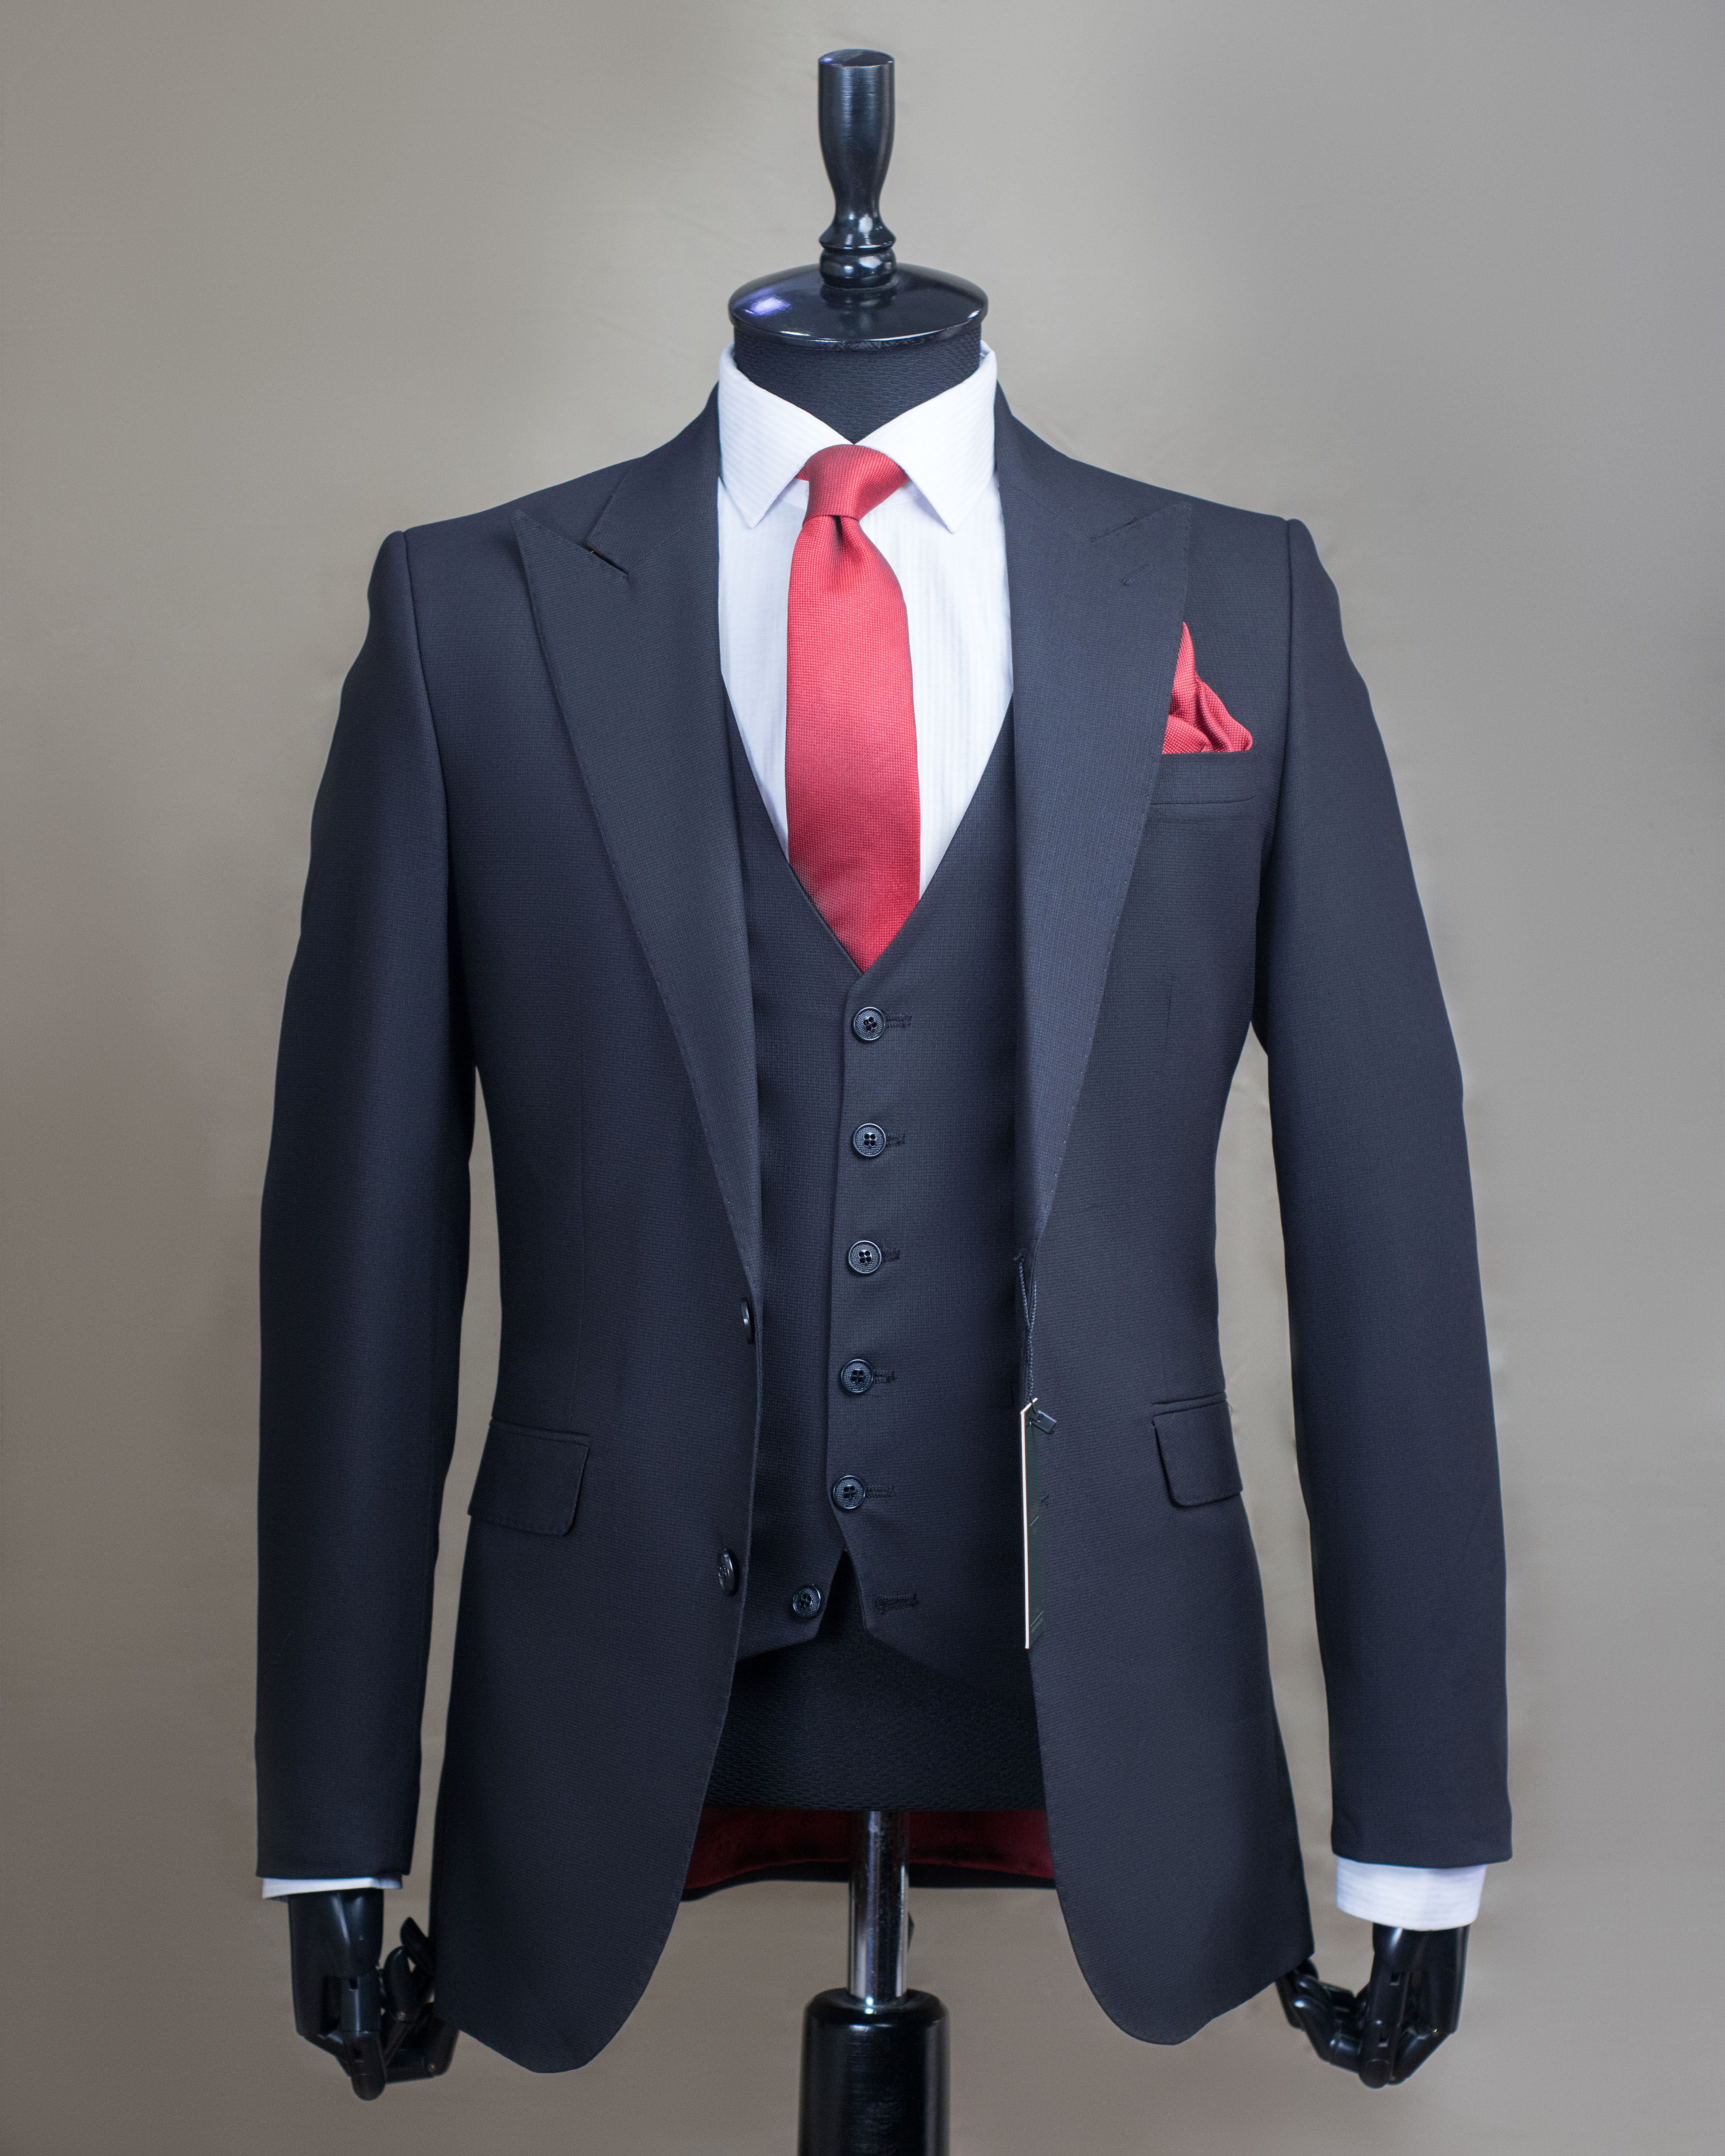 TAKE YOUR DRESSING UP A NOTCH WITH OUR LUXURY SUITS